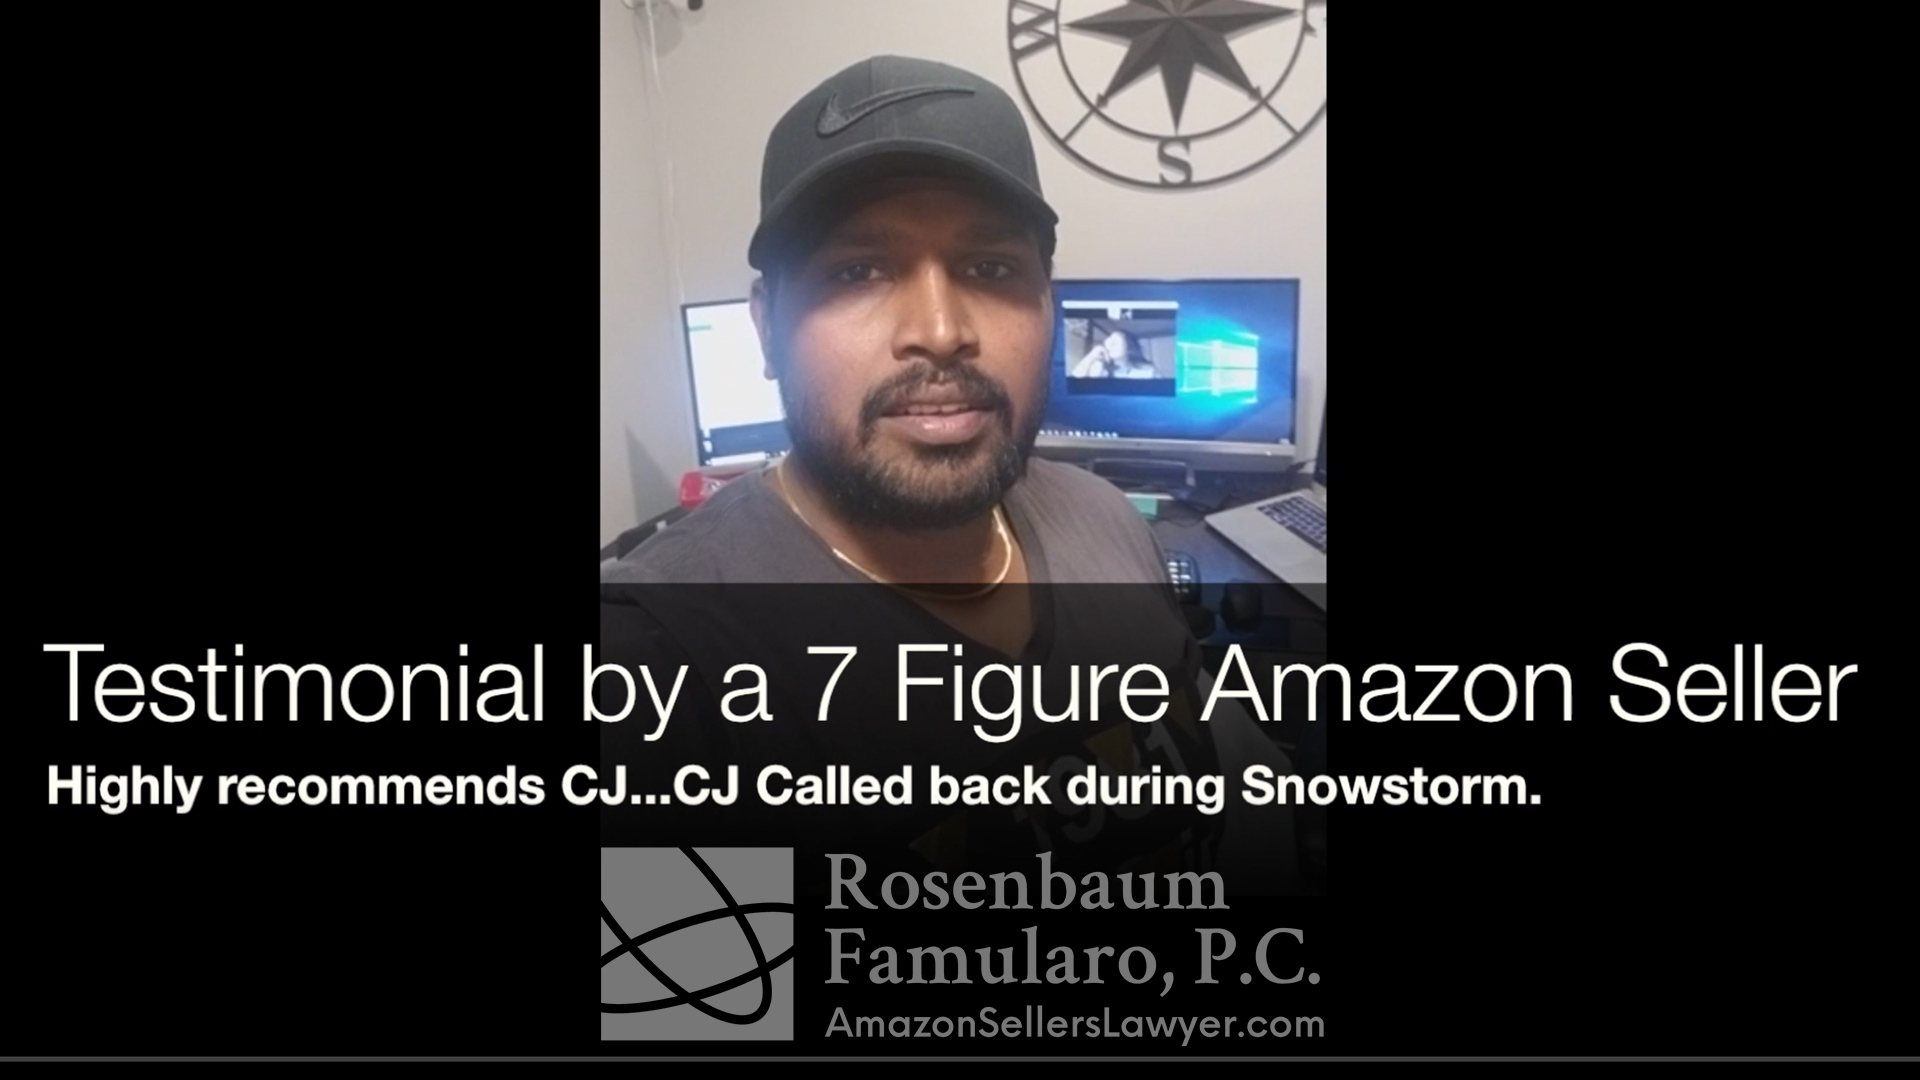 CJ Available to Help Amazon Sellers 7 Days a Week